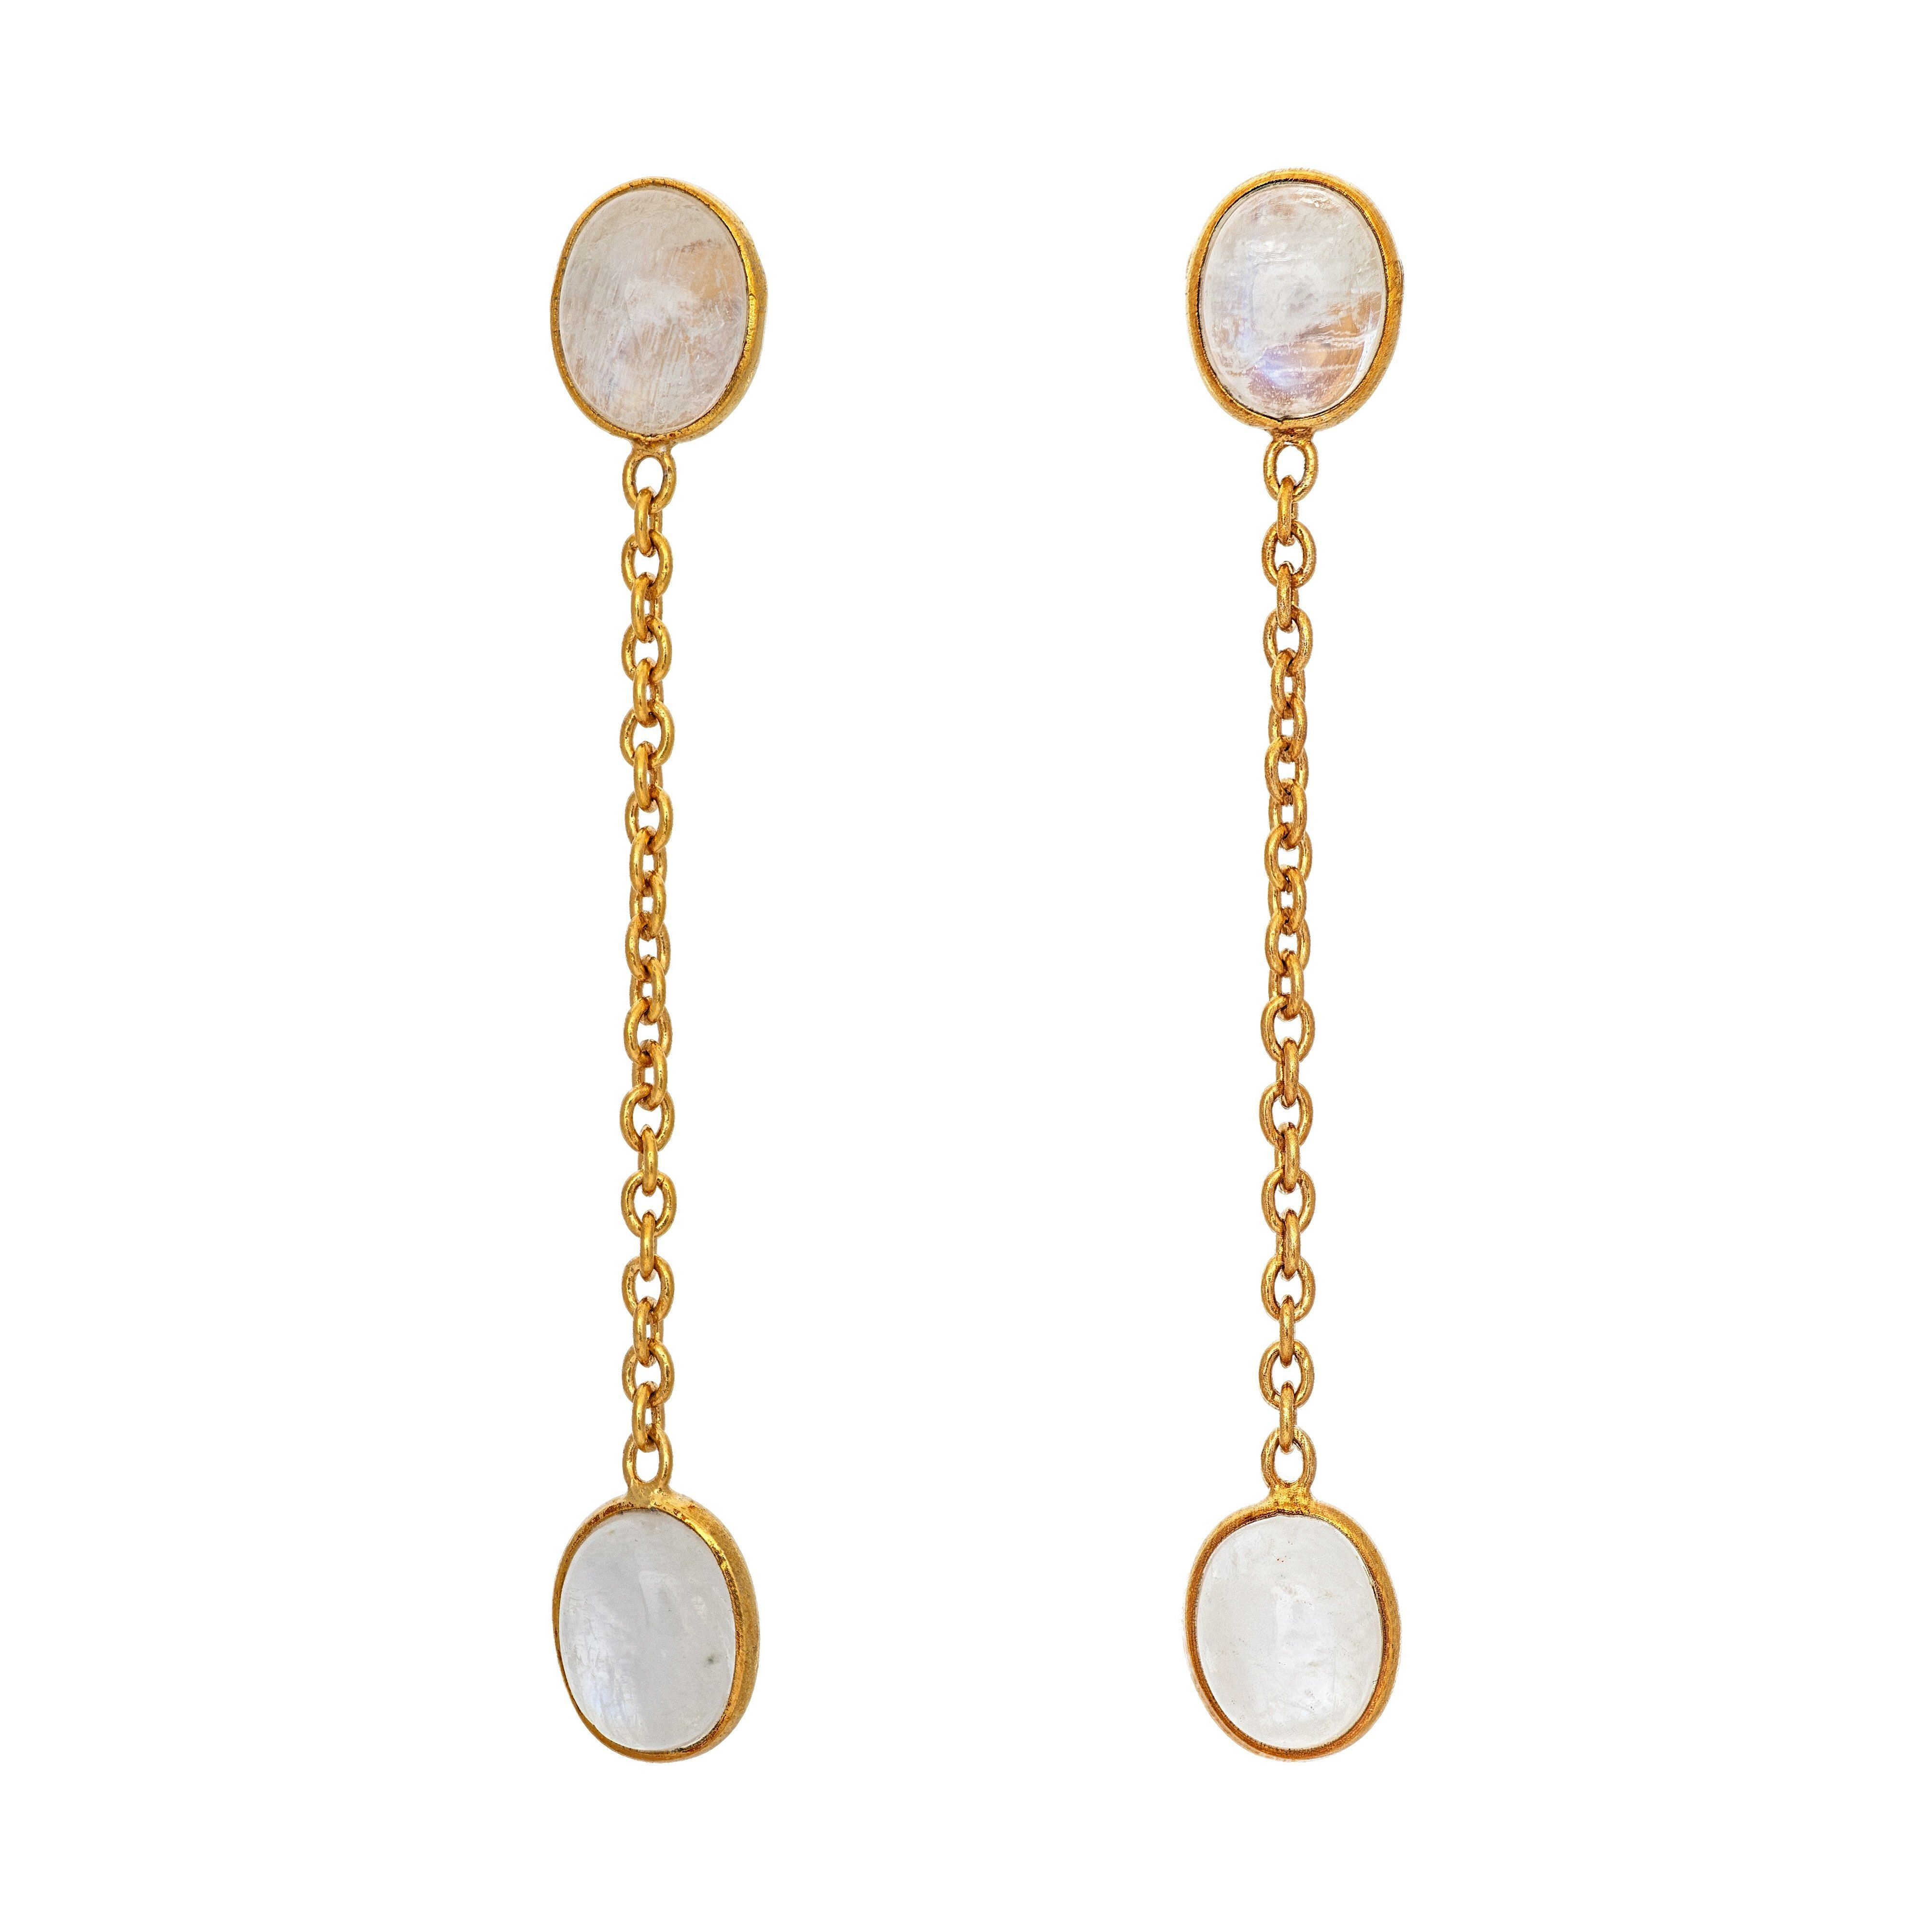 FUTA moonstone earrings - MadamSiam